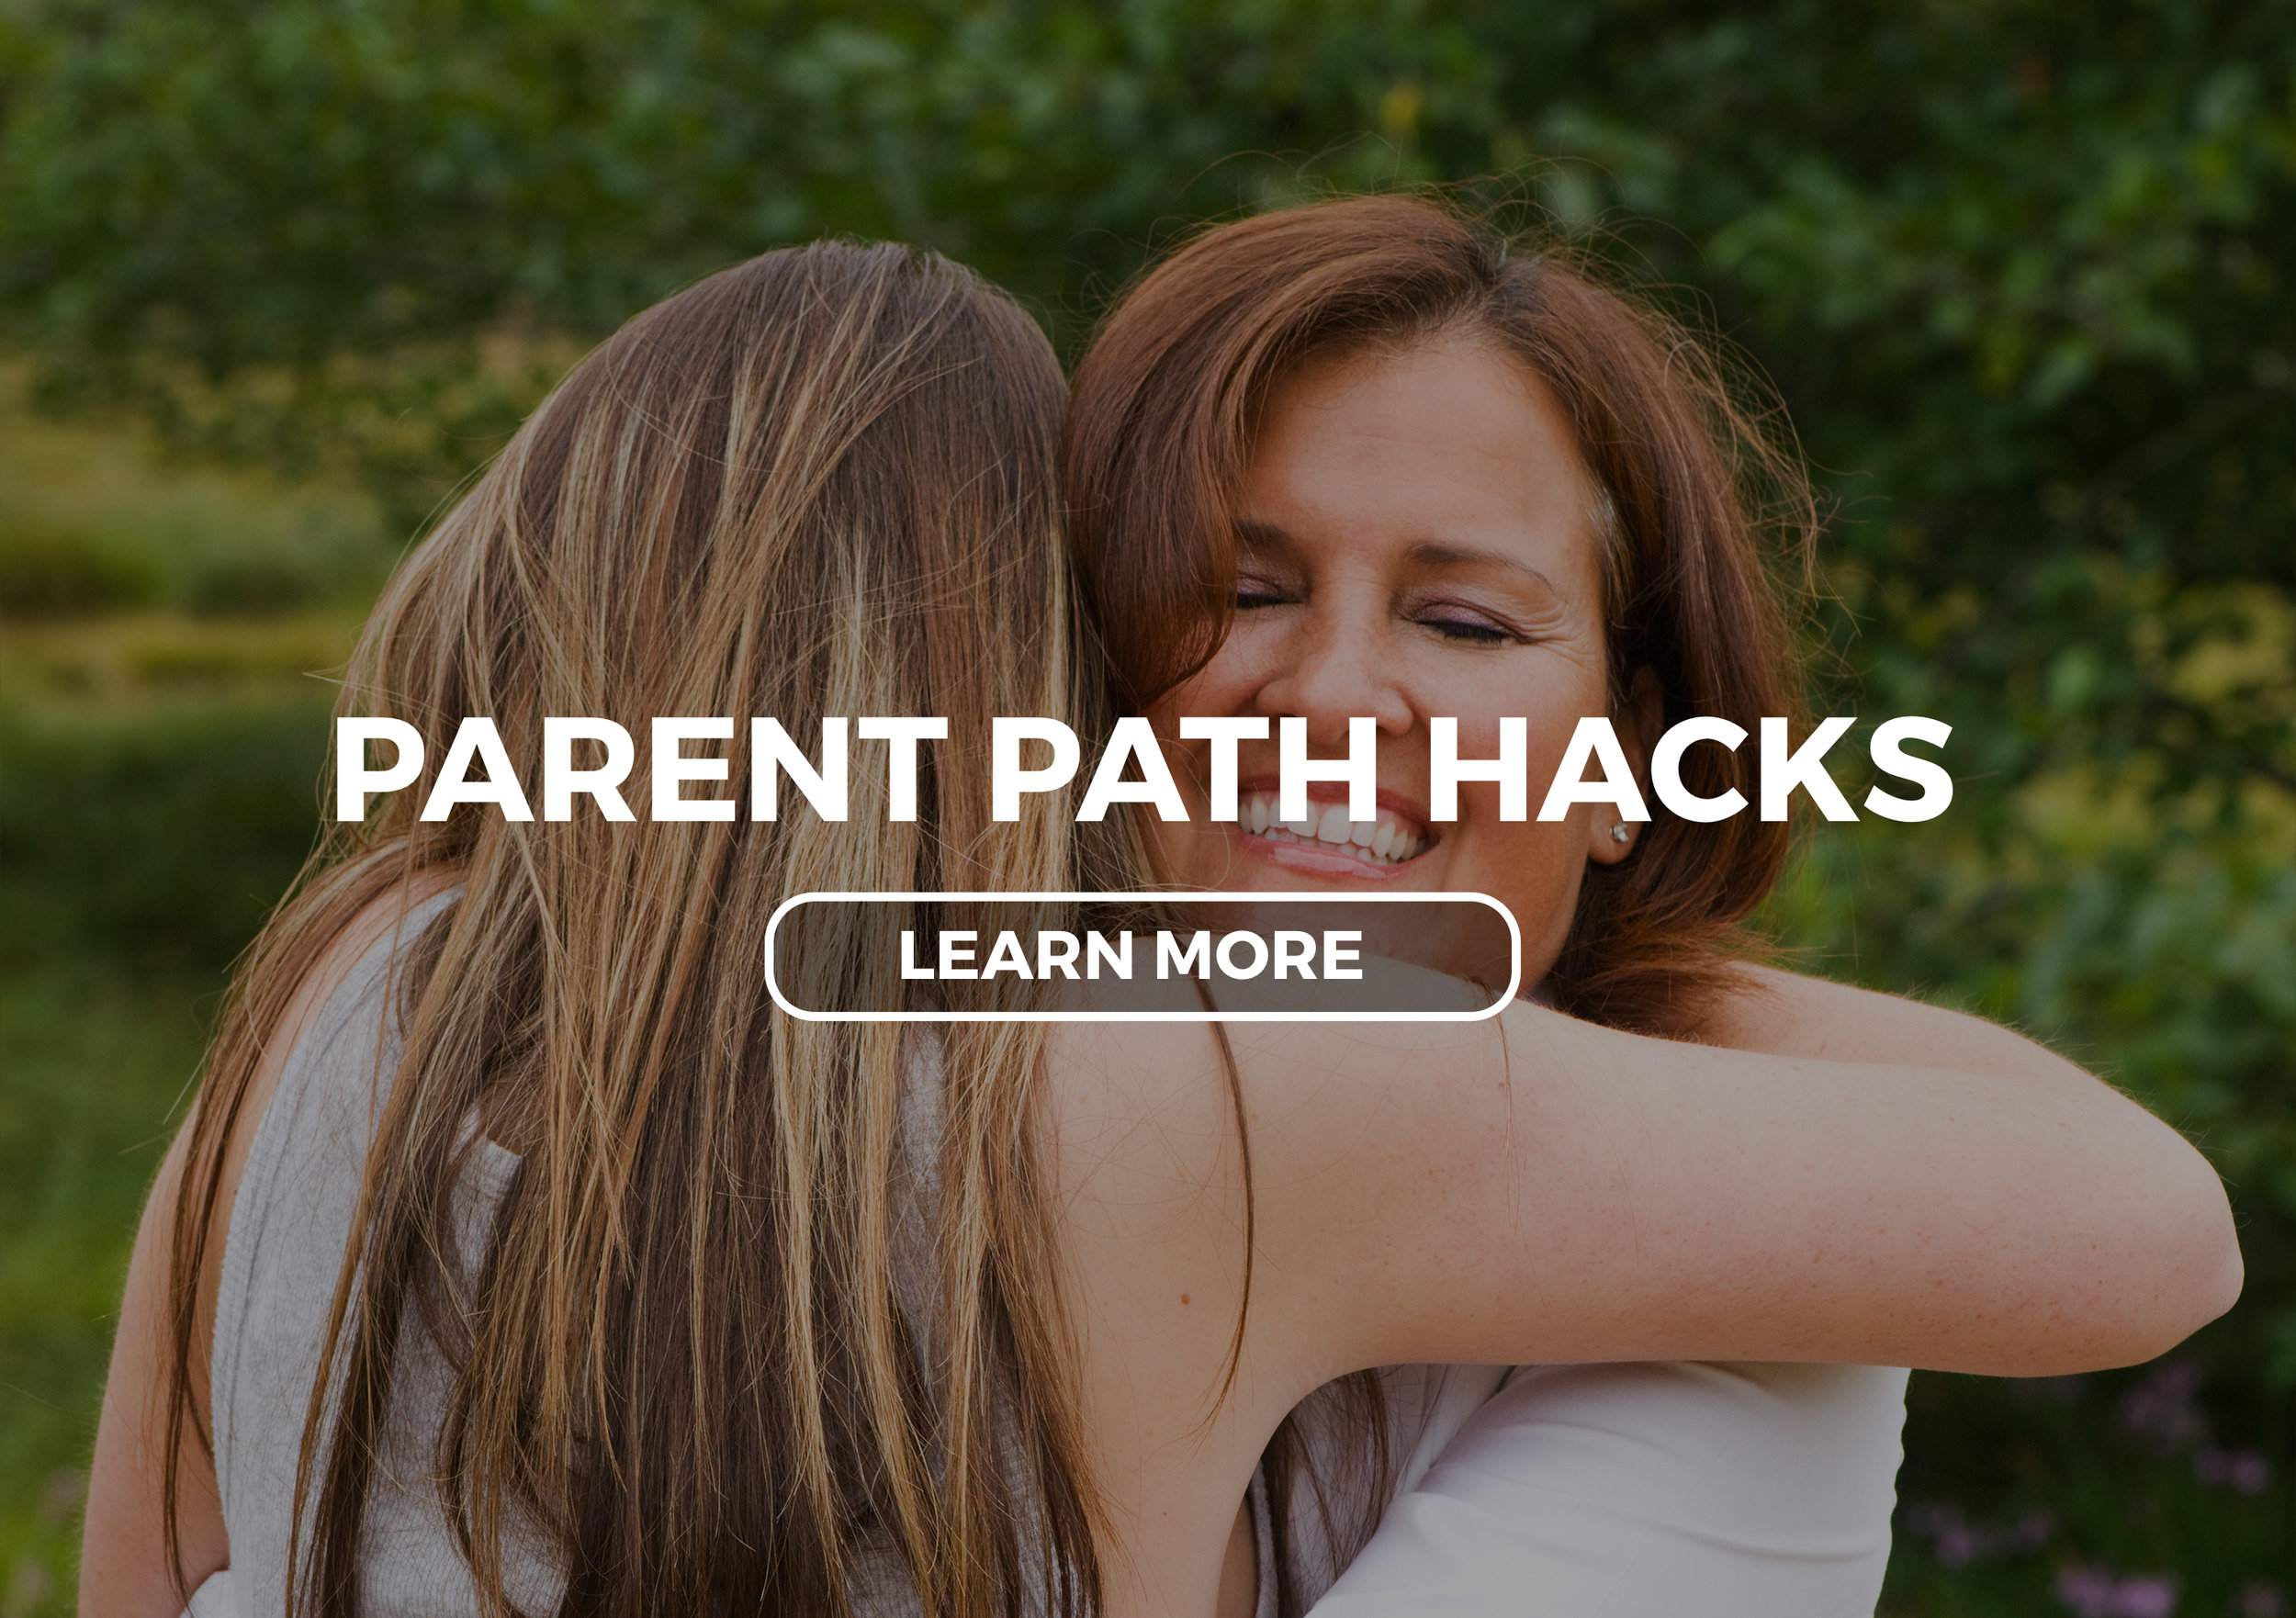 Parent Path Hacks